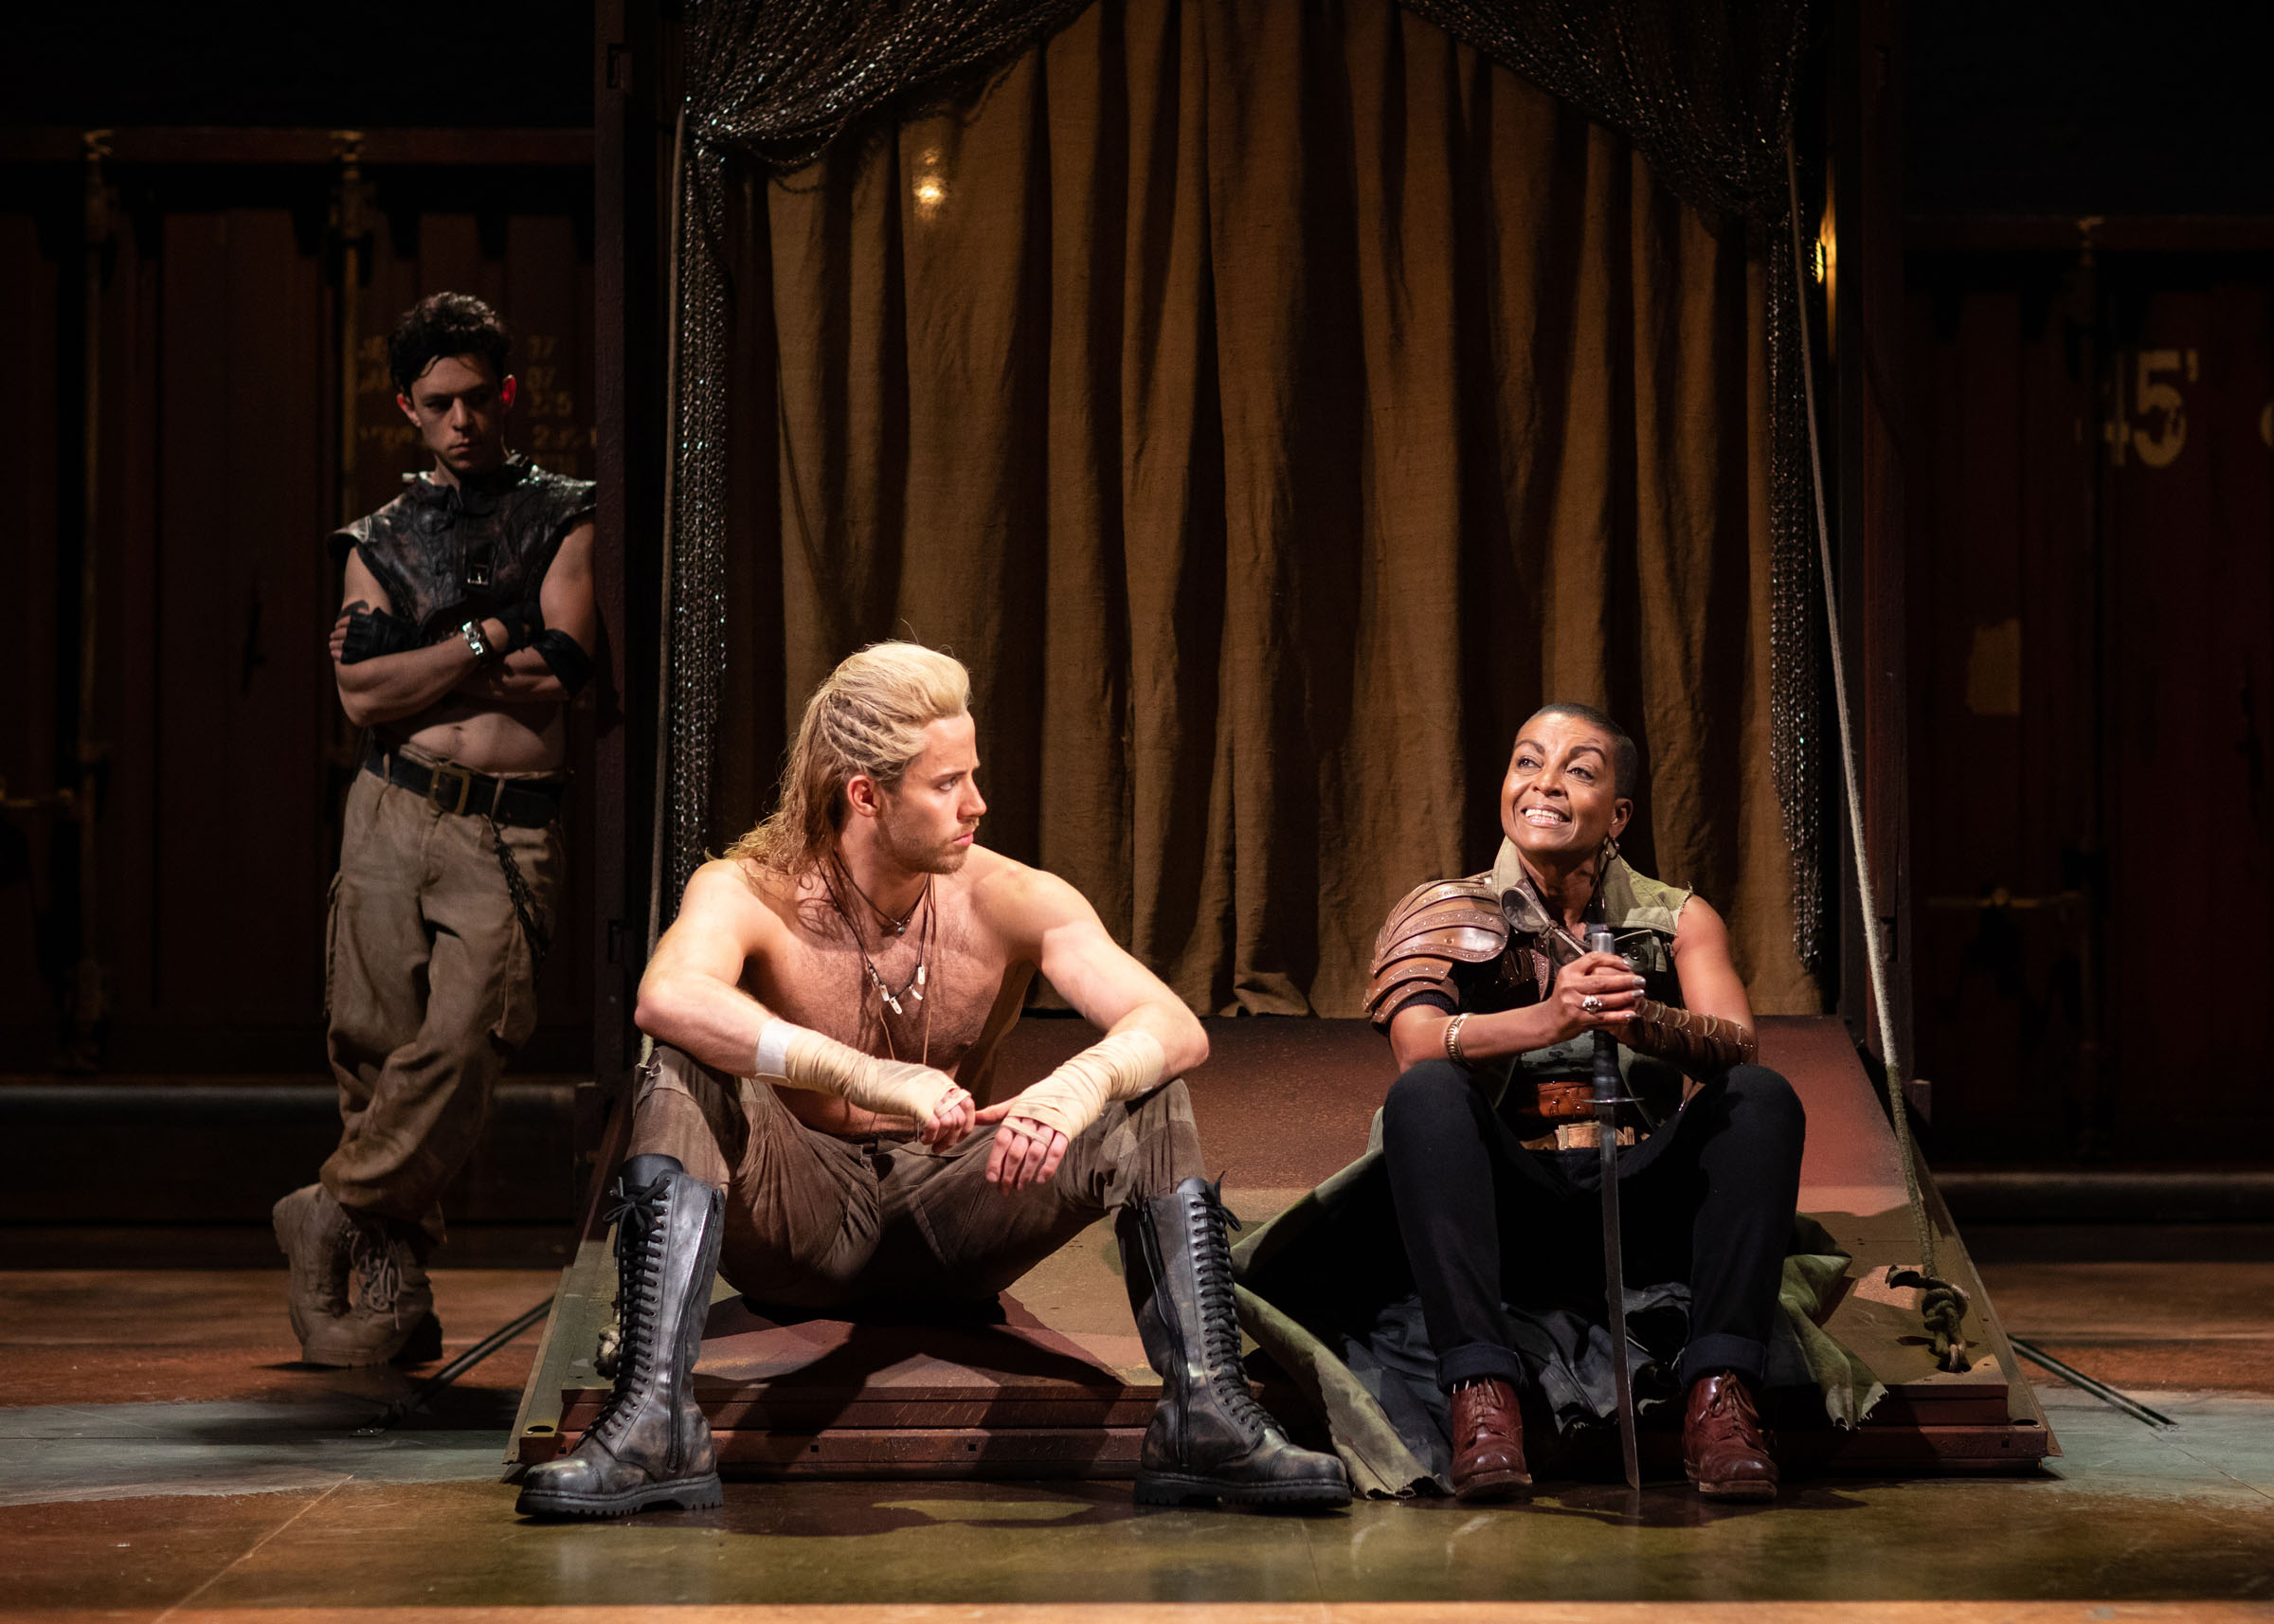 James Cooney as Patroclus, Andy Apollo as Achilles and Adjoa Andoh as Ulysses in Troilus and Cressida